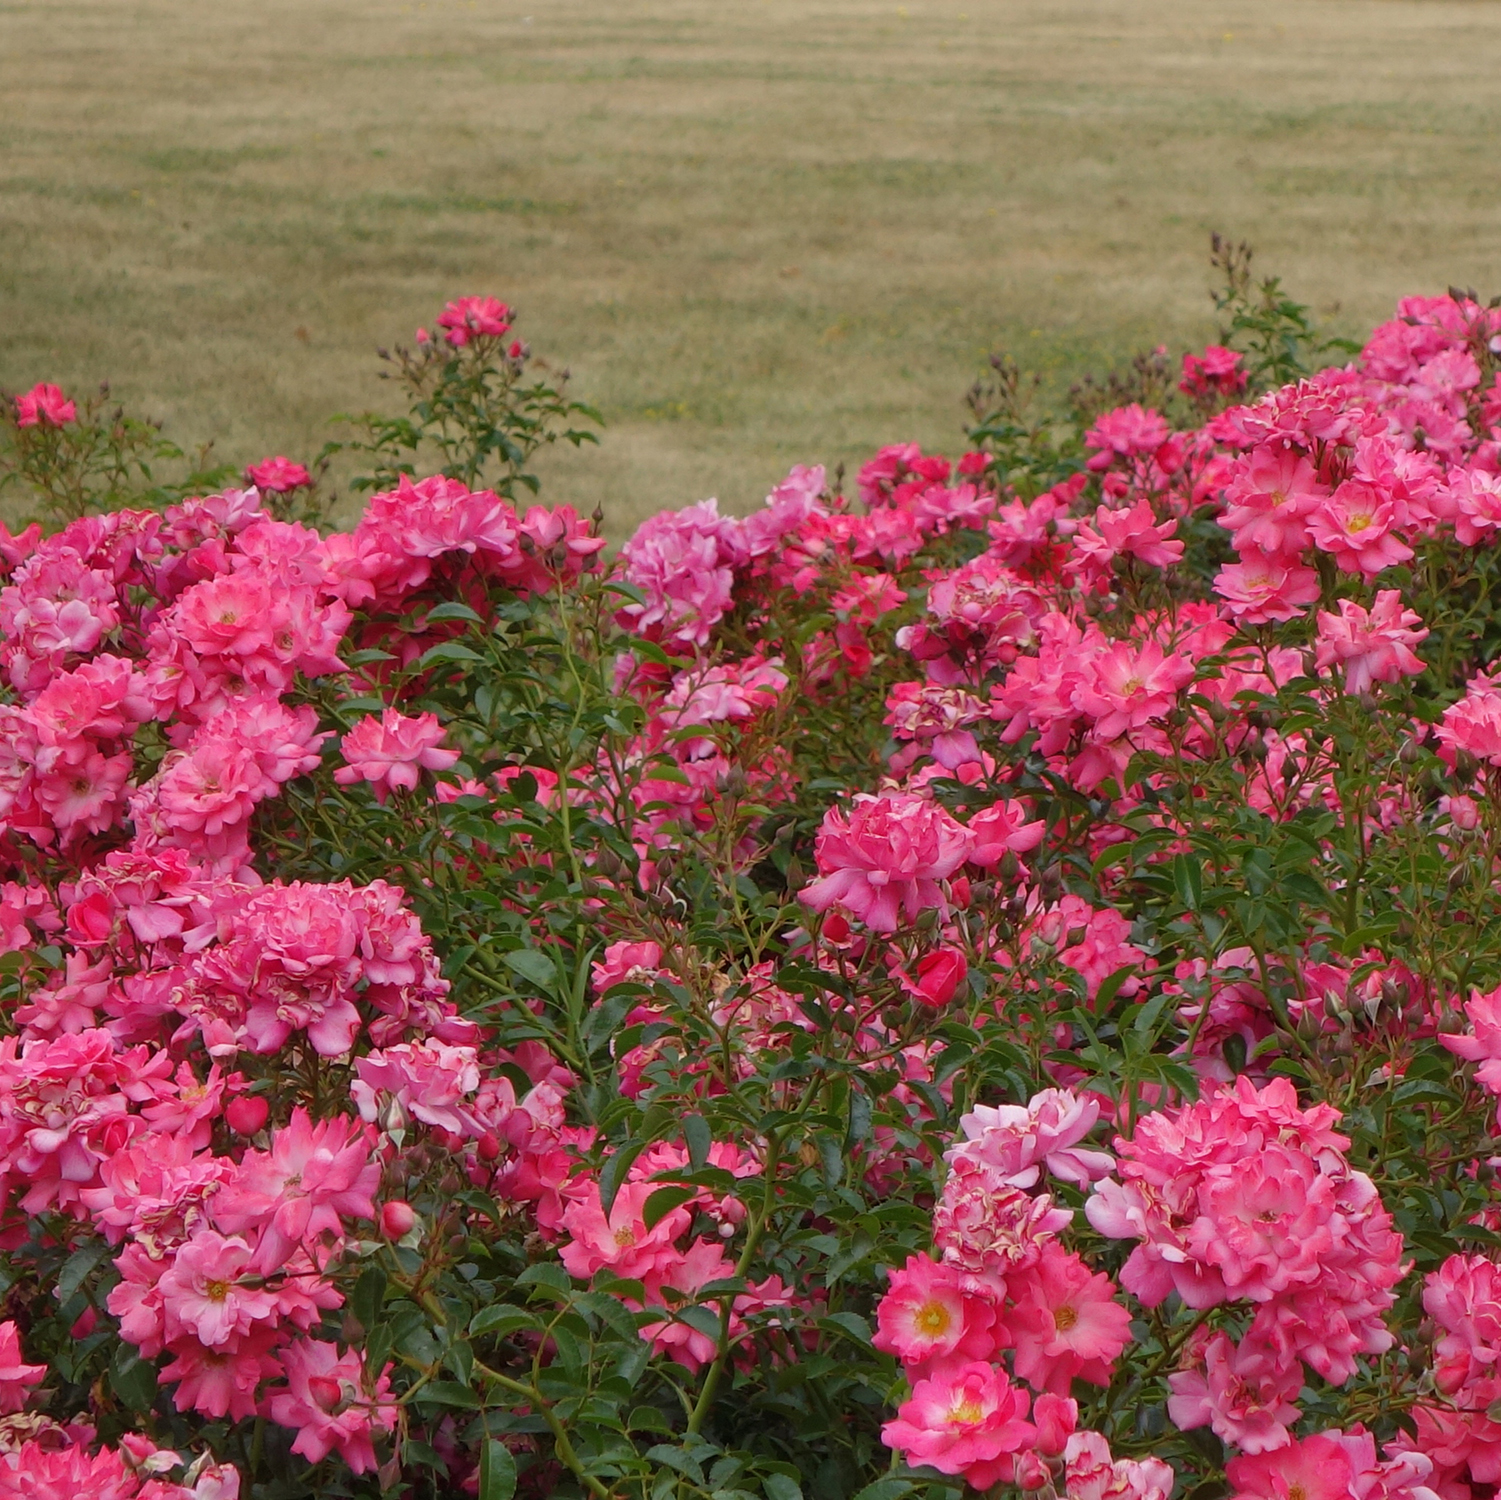 Take a look at this brutal comparison. This lawn isn't dead yet, but it still shows why replacing it with lovely plants (these are Flower Carpet Pink Supreme roses) makes sense.